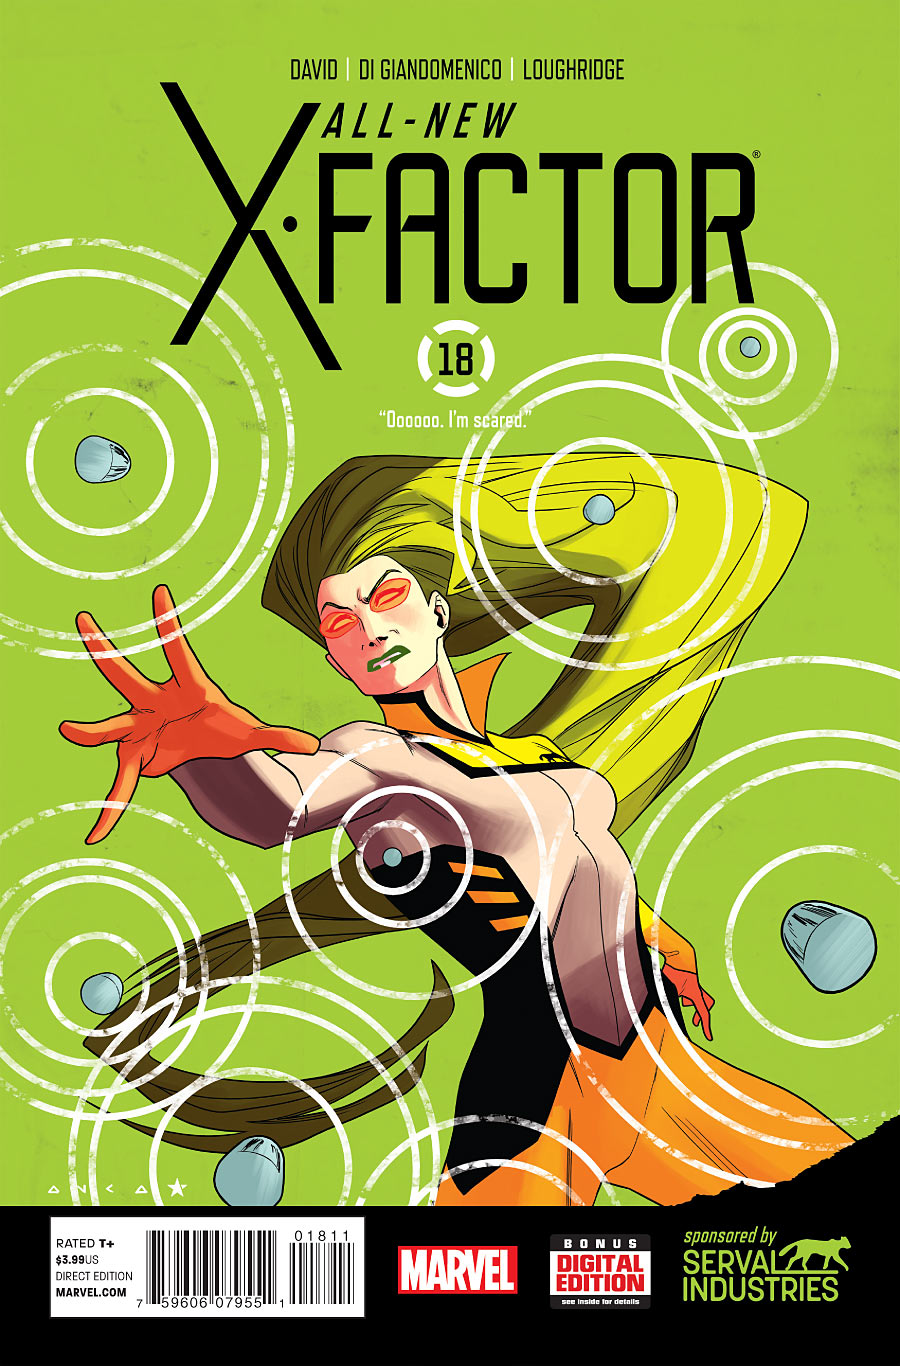 All-New X-Factor #18